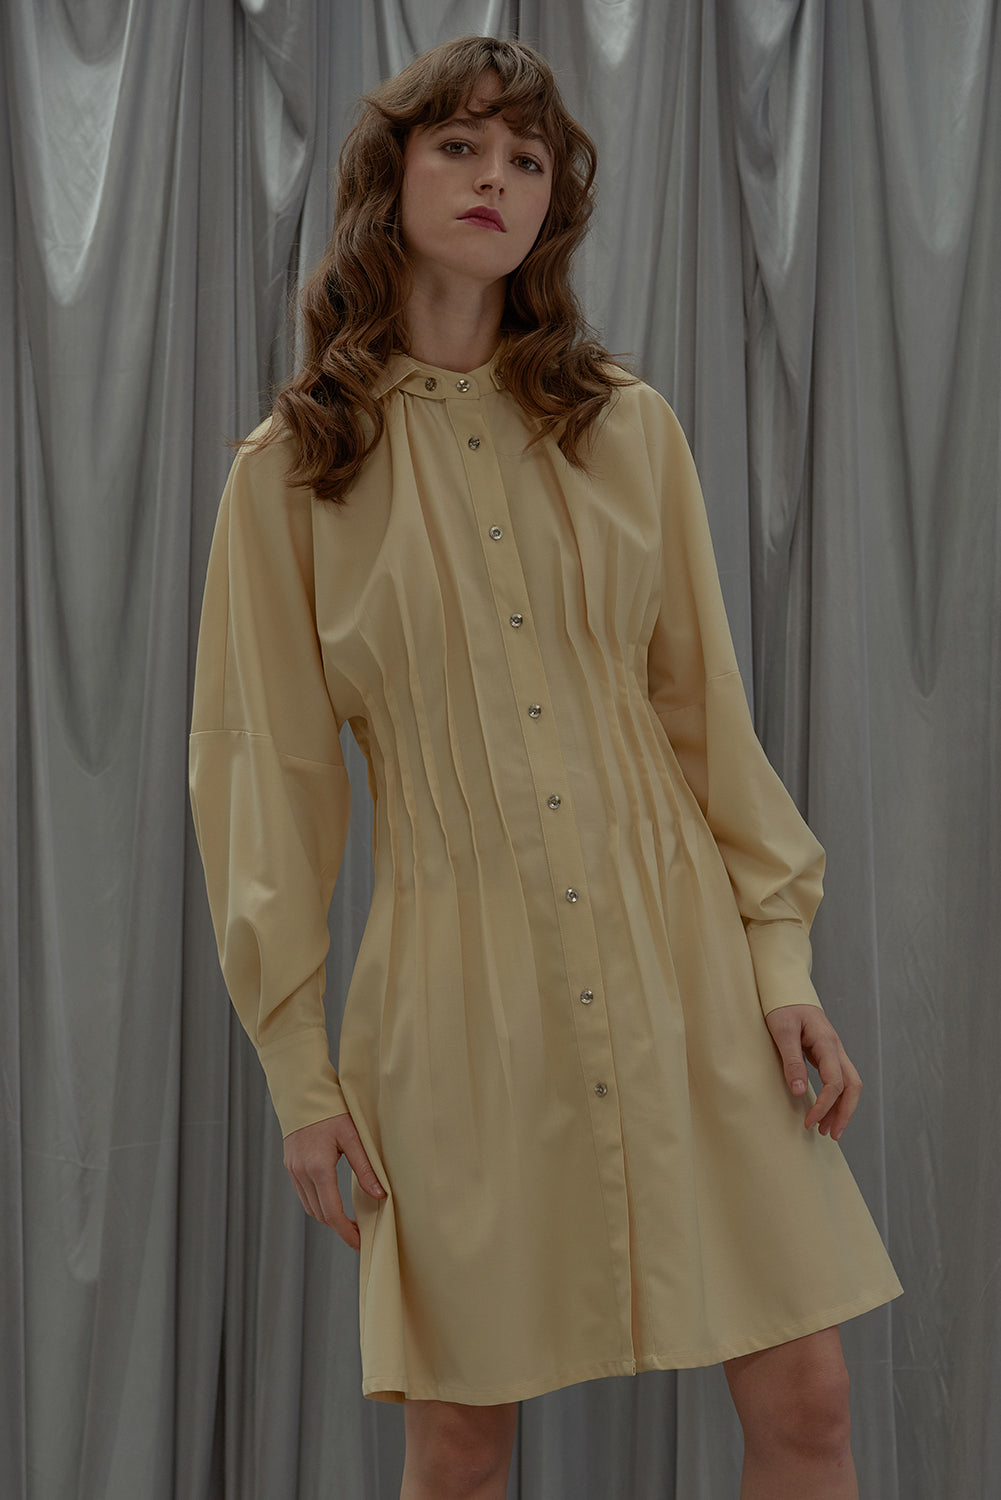 Sunday Girl Dress-Vanilla Yellow